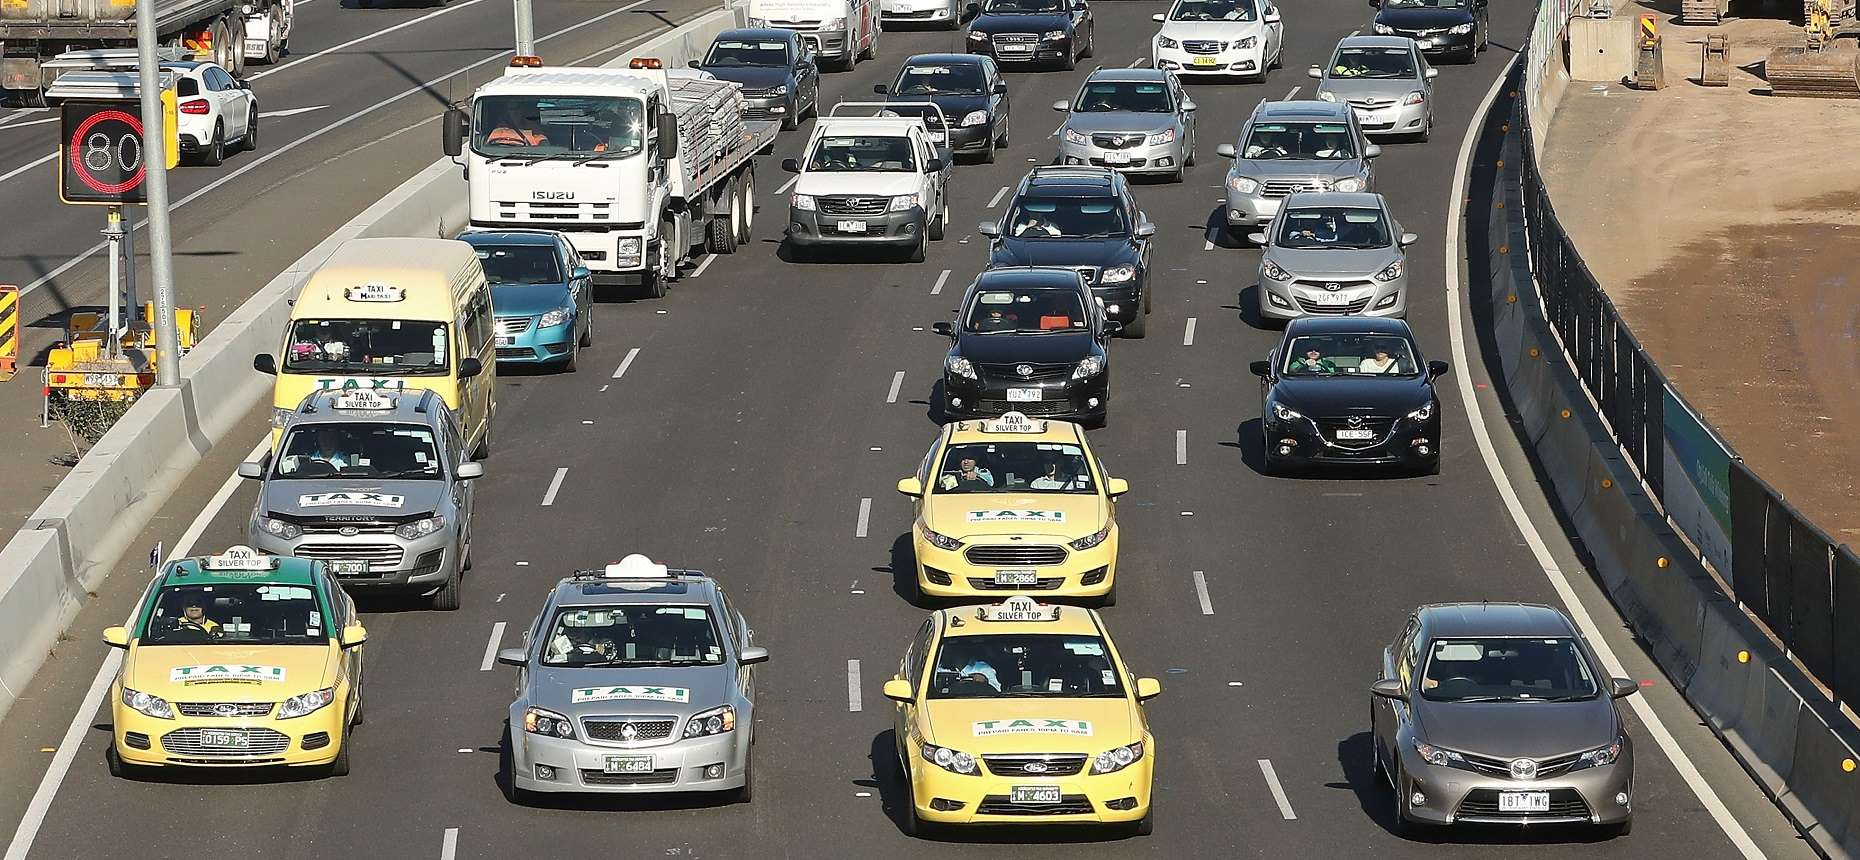 Taxis Cause Chaos at Melbourne Airport